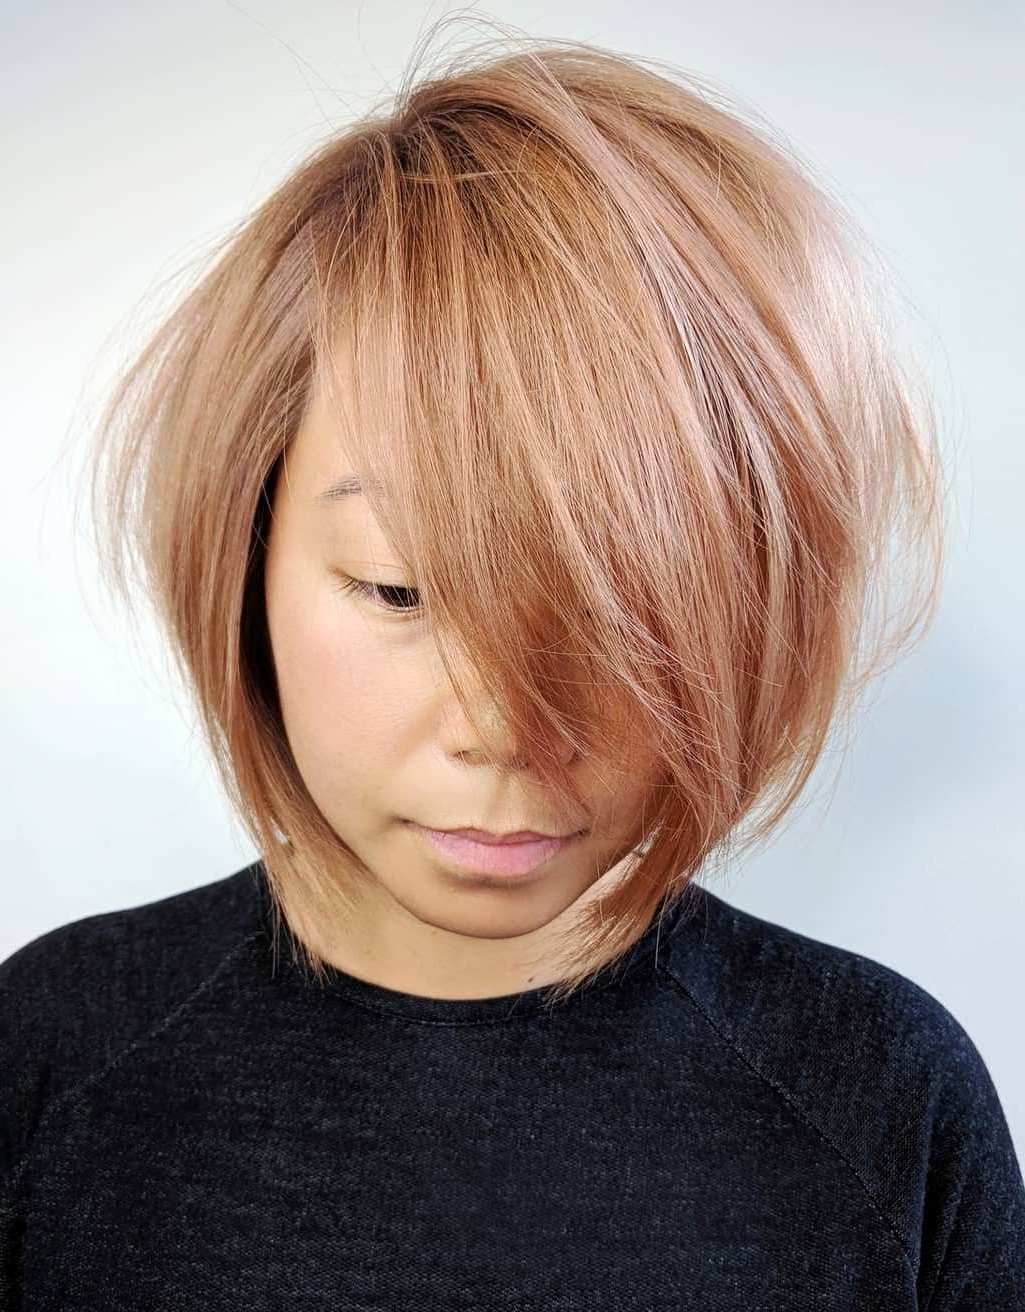 Famous Strawberry Blonde Bob Hairstyles With Flipped Ends Inside The Most Instagrammable Hairstyles With Bangs In (View 6 of 20)